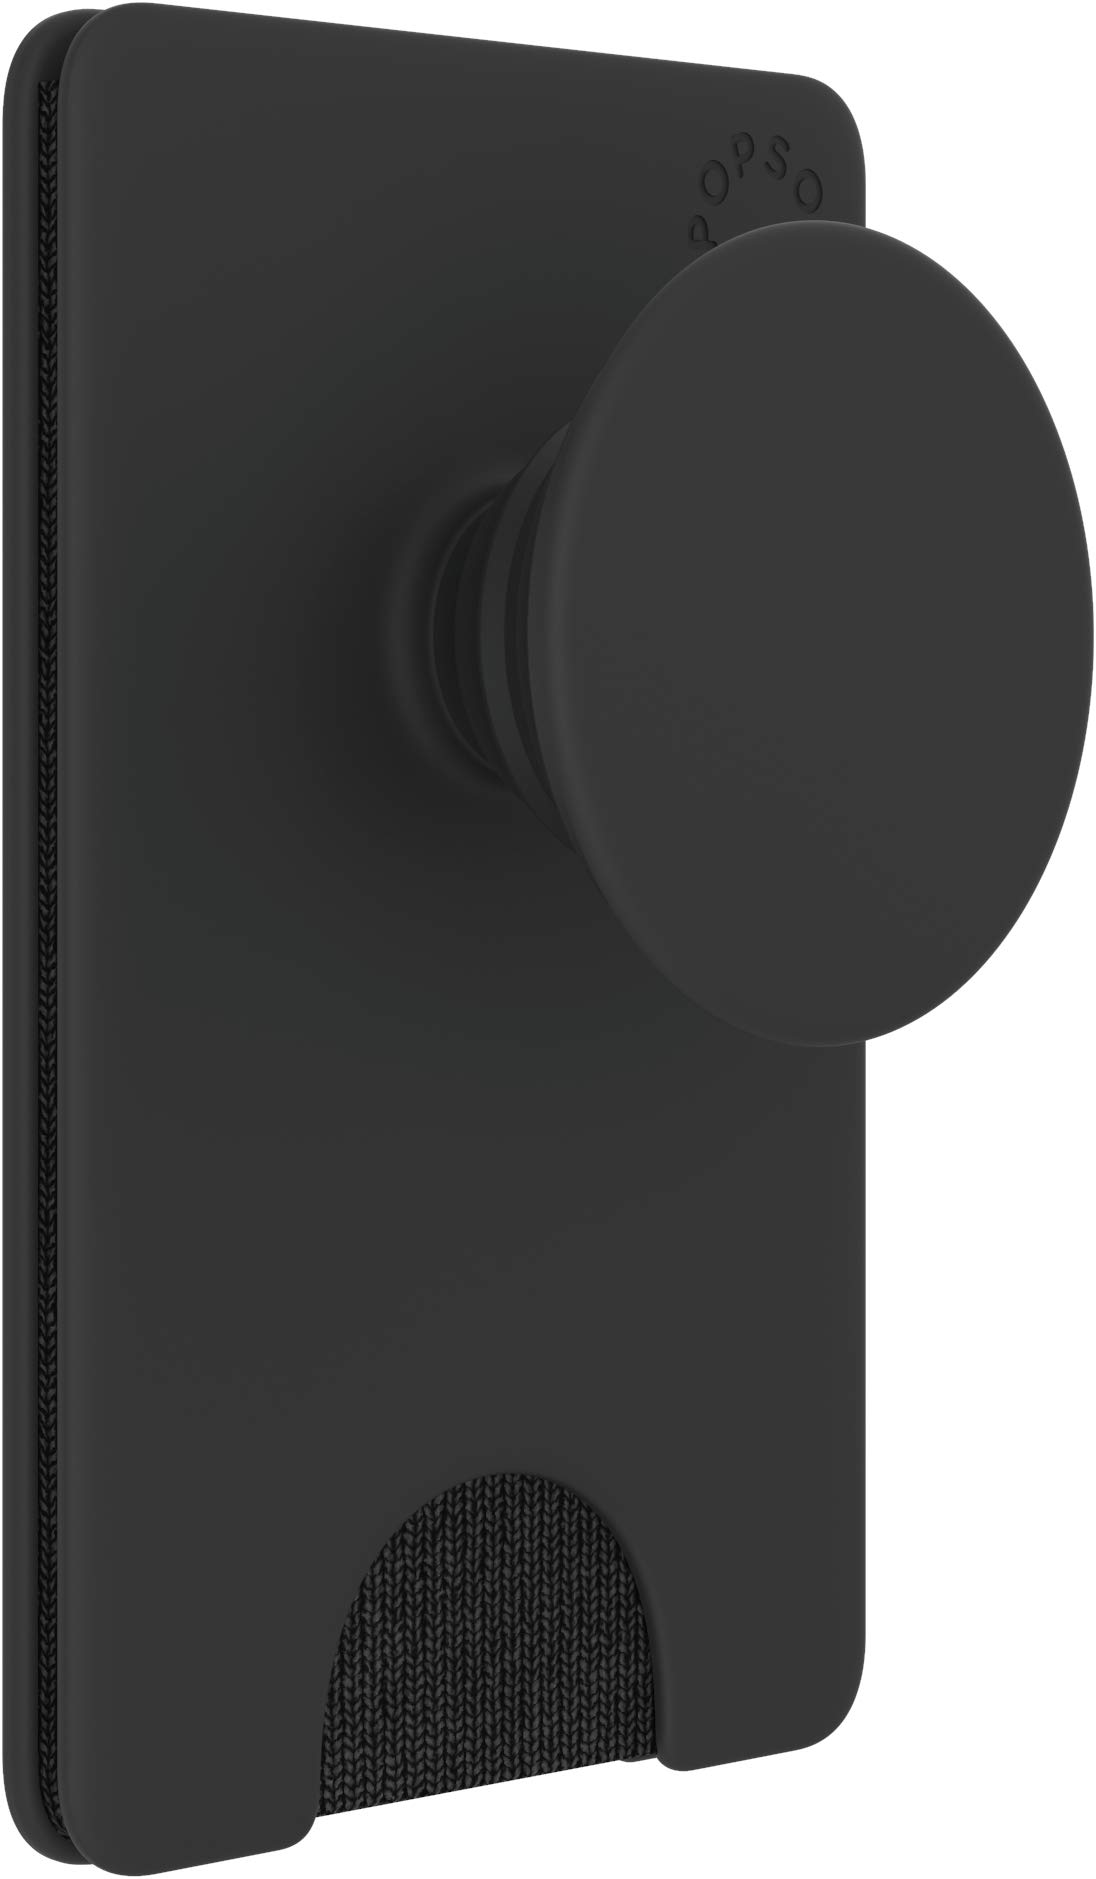 PopSockets PopWallet+: Swappable & Repositionable Wallet - Black by PopSockets